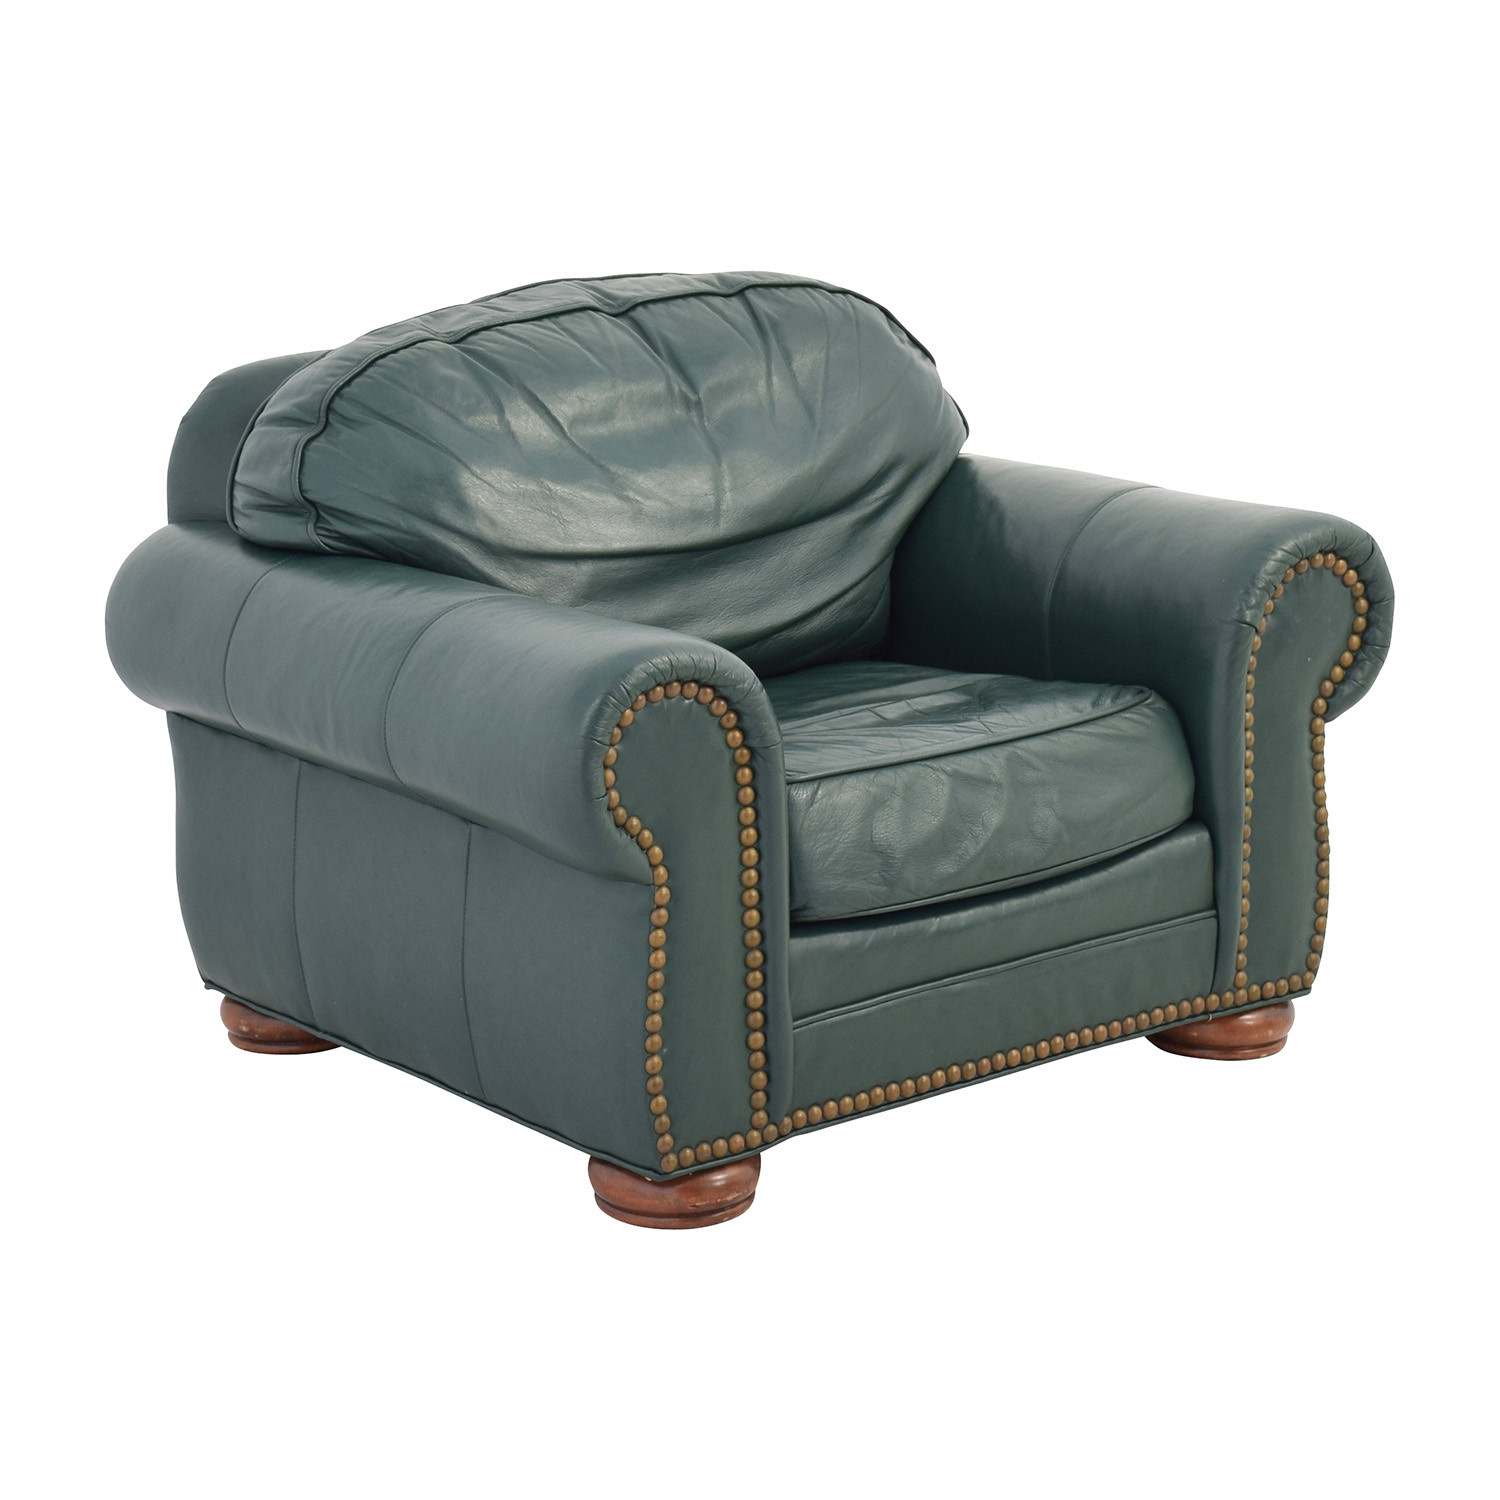 Nice ... Clayton Marcus Clayton Marcus Oversized Green Leather Chair Nj ...